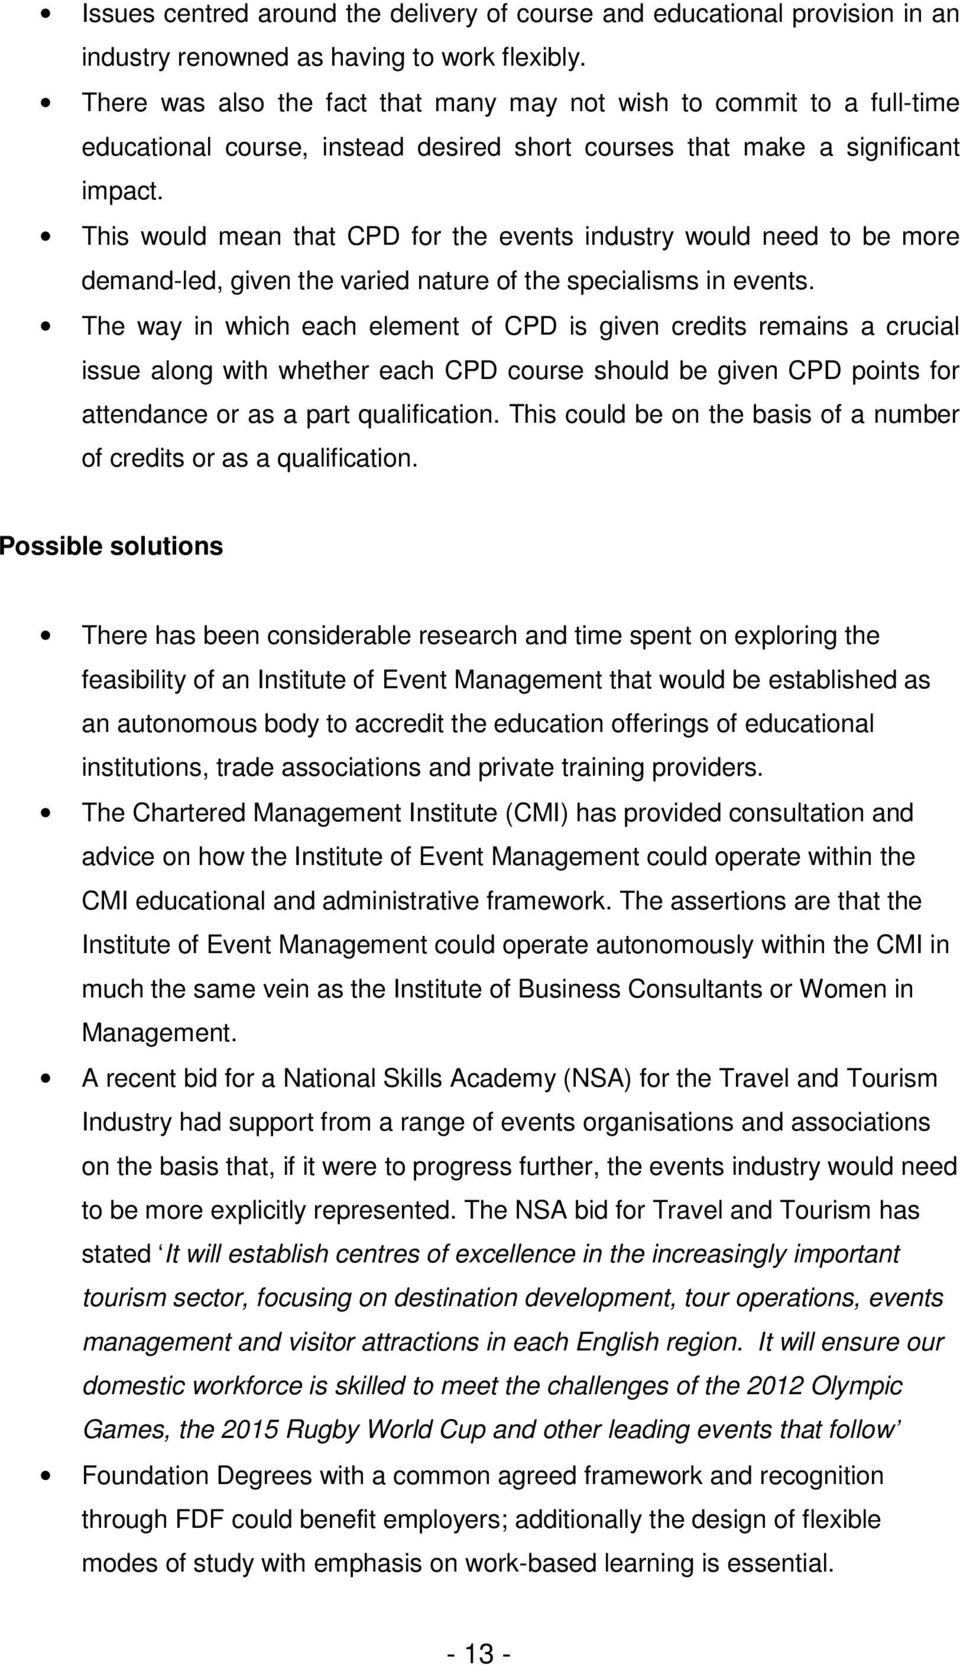 This would mean that CPD for the events industry would need to be more demand-led, given the varied nature of the specialisms in events.